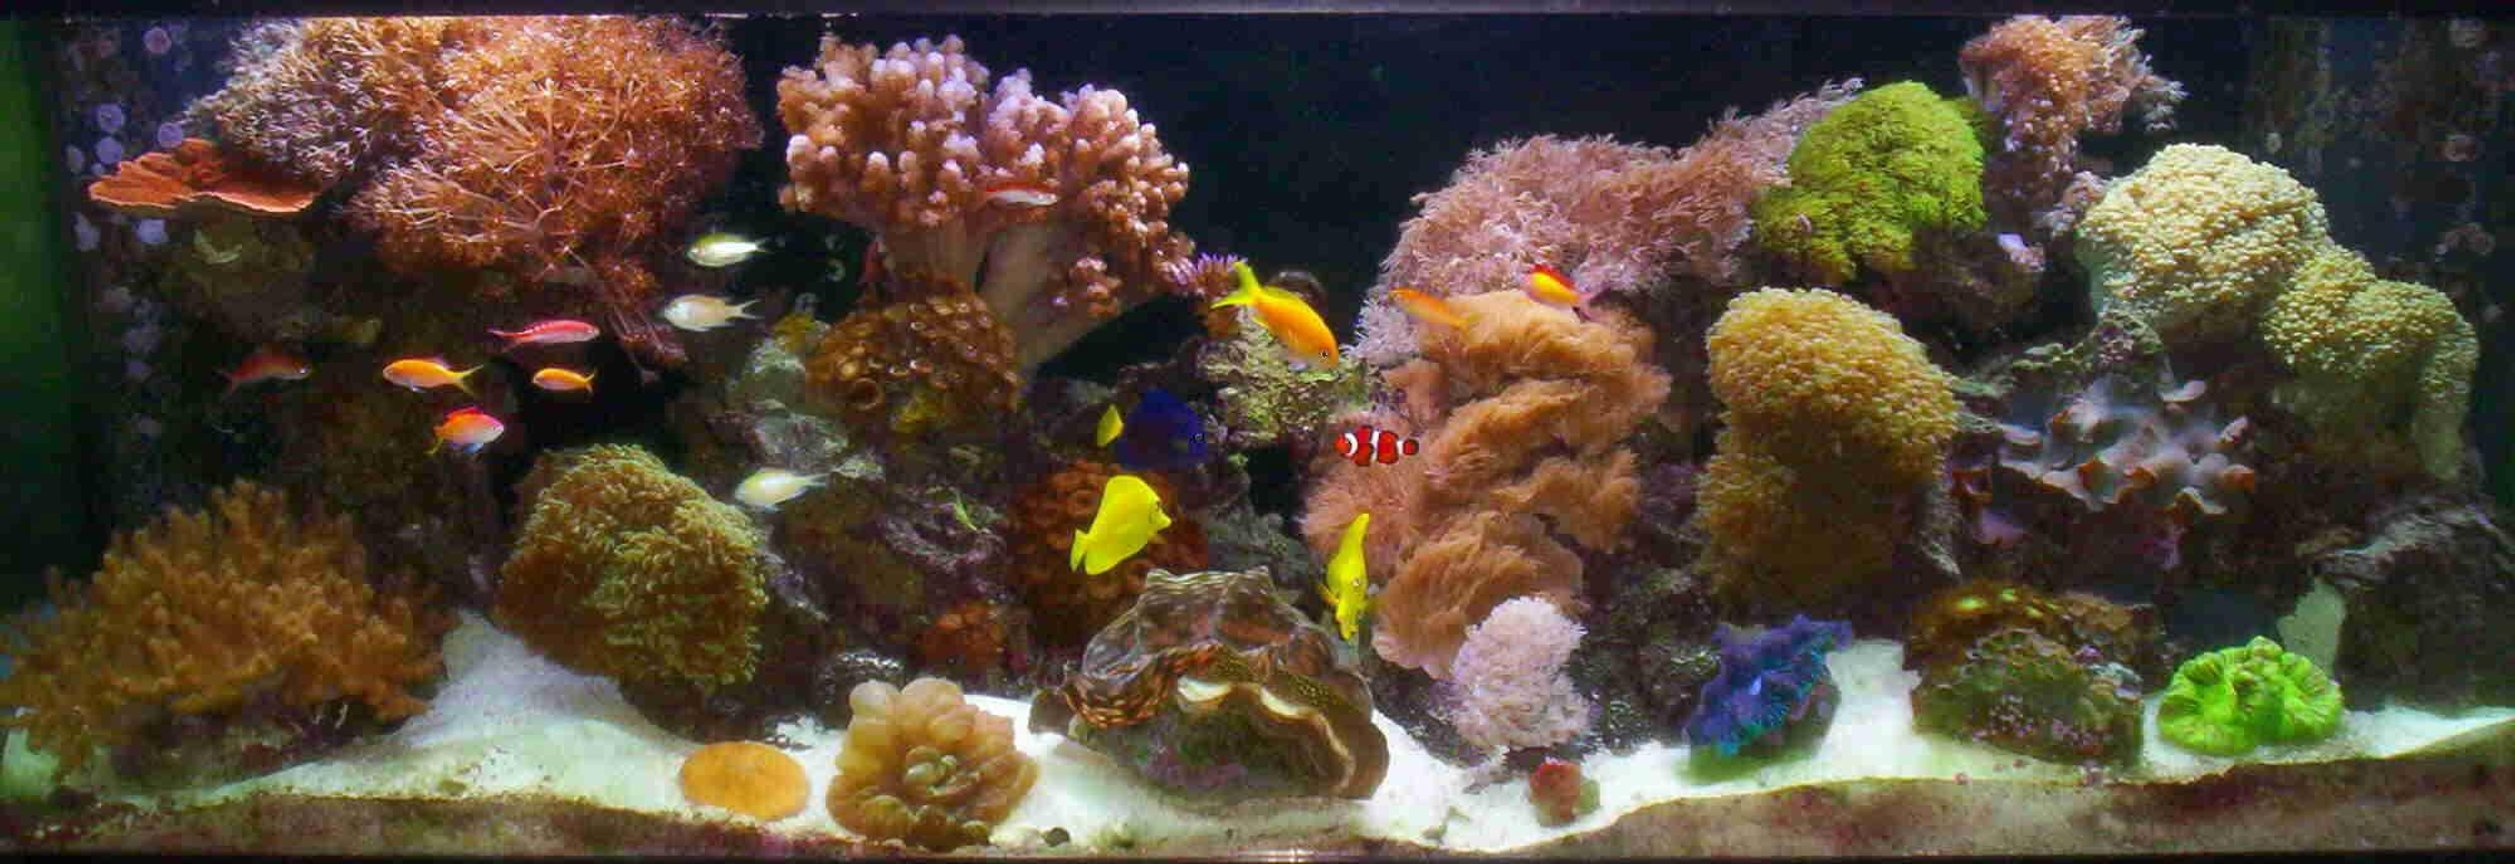 180 gallons reef tank (mostly live coral and fish) - 180 gal 2yr old tank